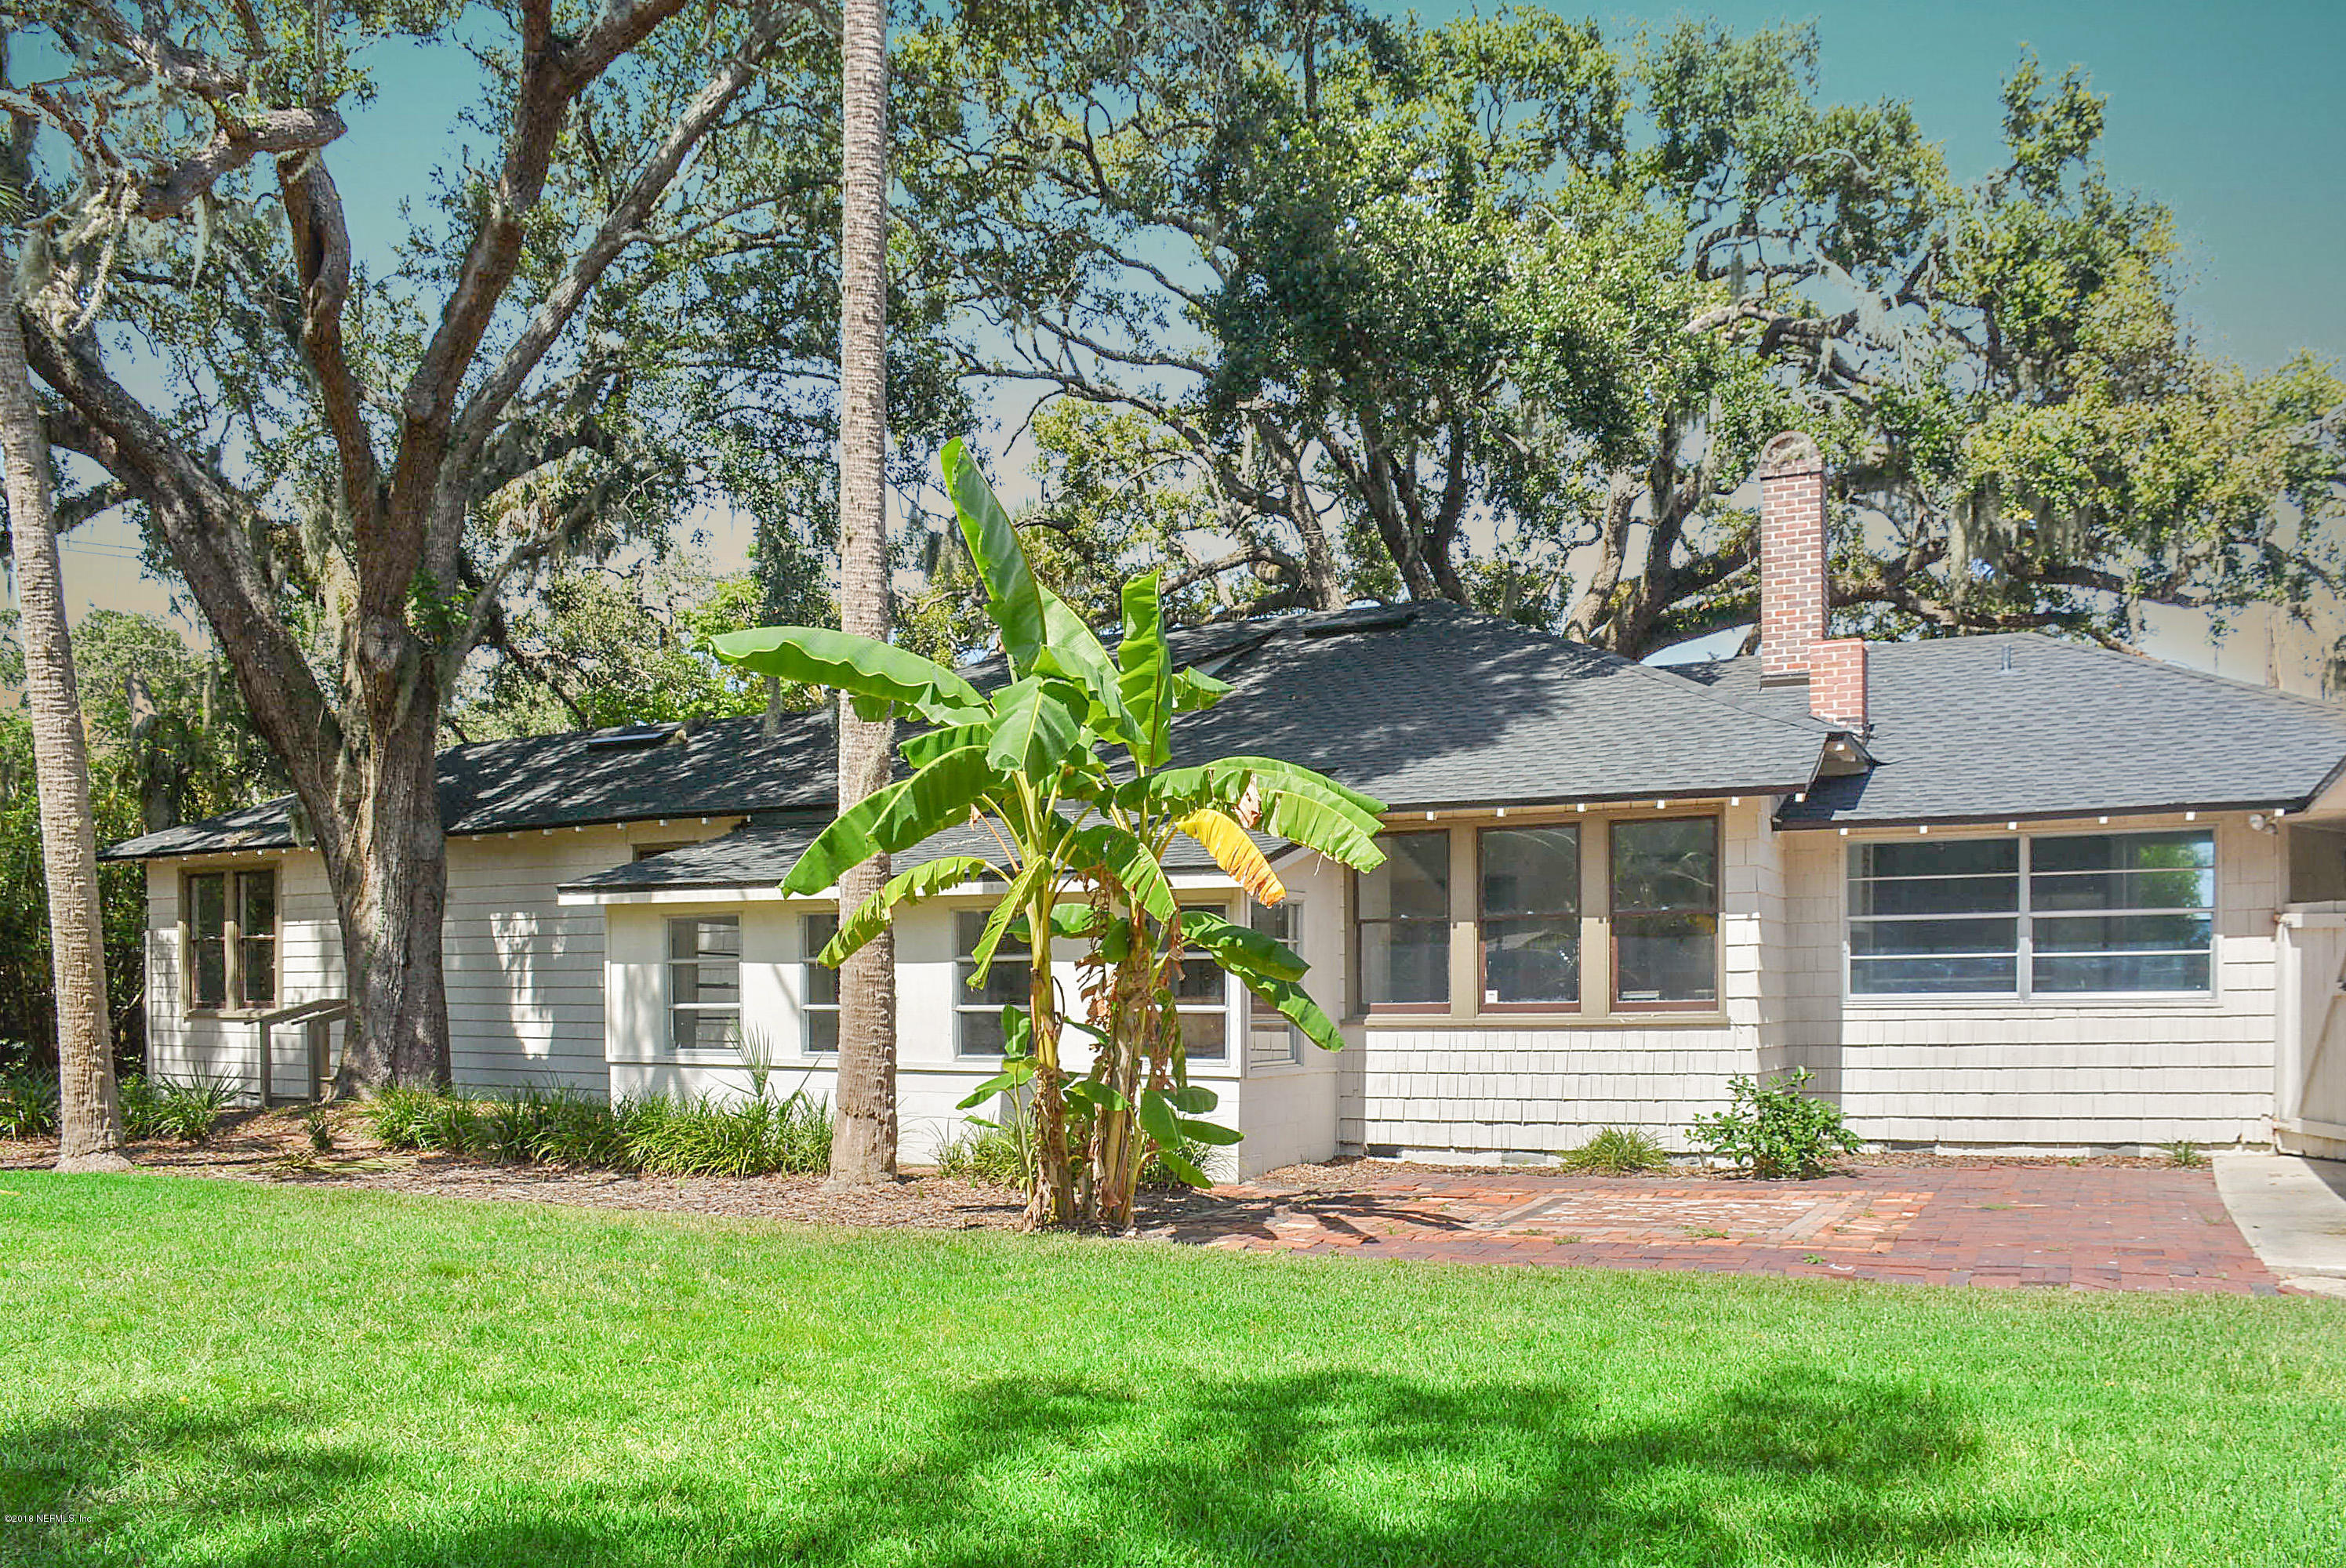 152 MARINE, ST AUGUSTINE, FLORIDA 32084, 3 Bedrooms Bedrooms, ,2 BathroomsBathrooms,Residential - single family,For sale,MARINE,953328